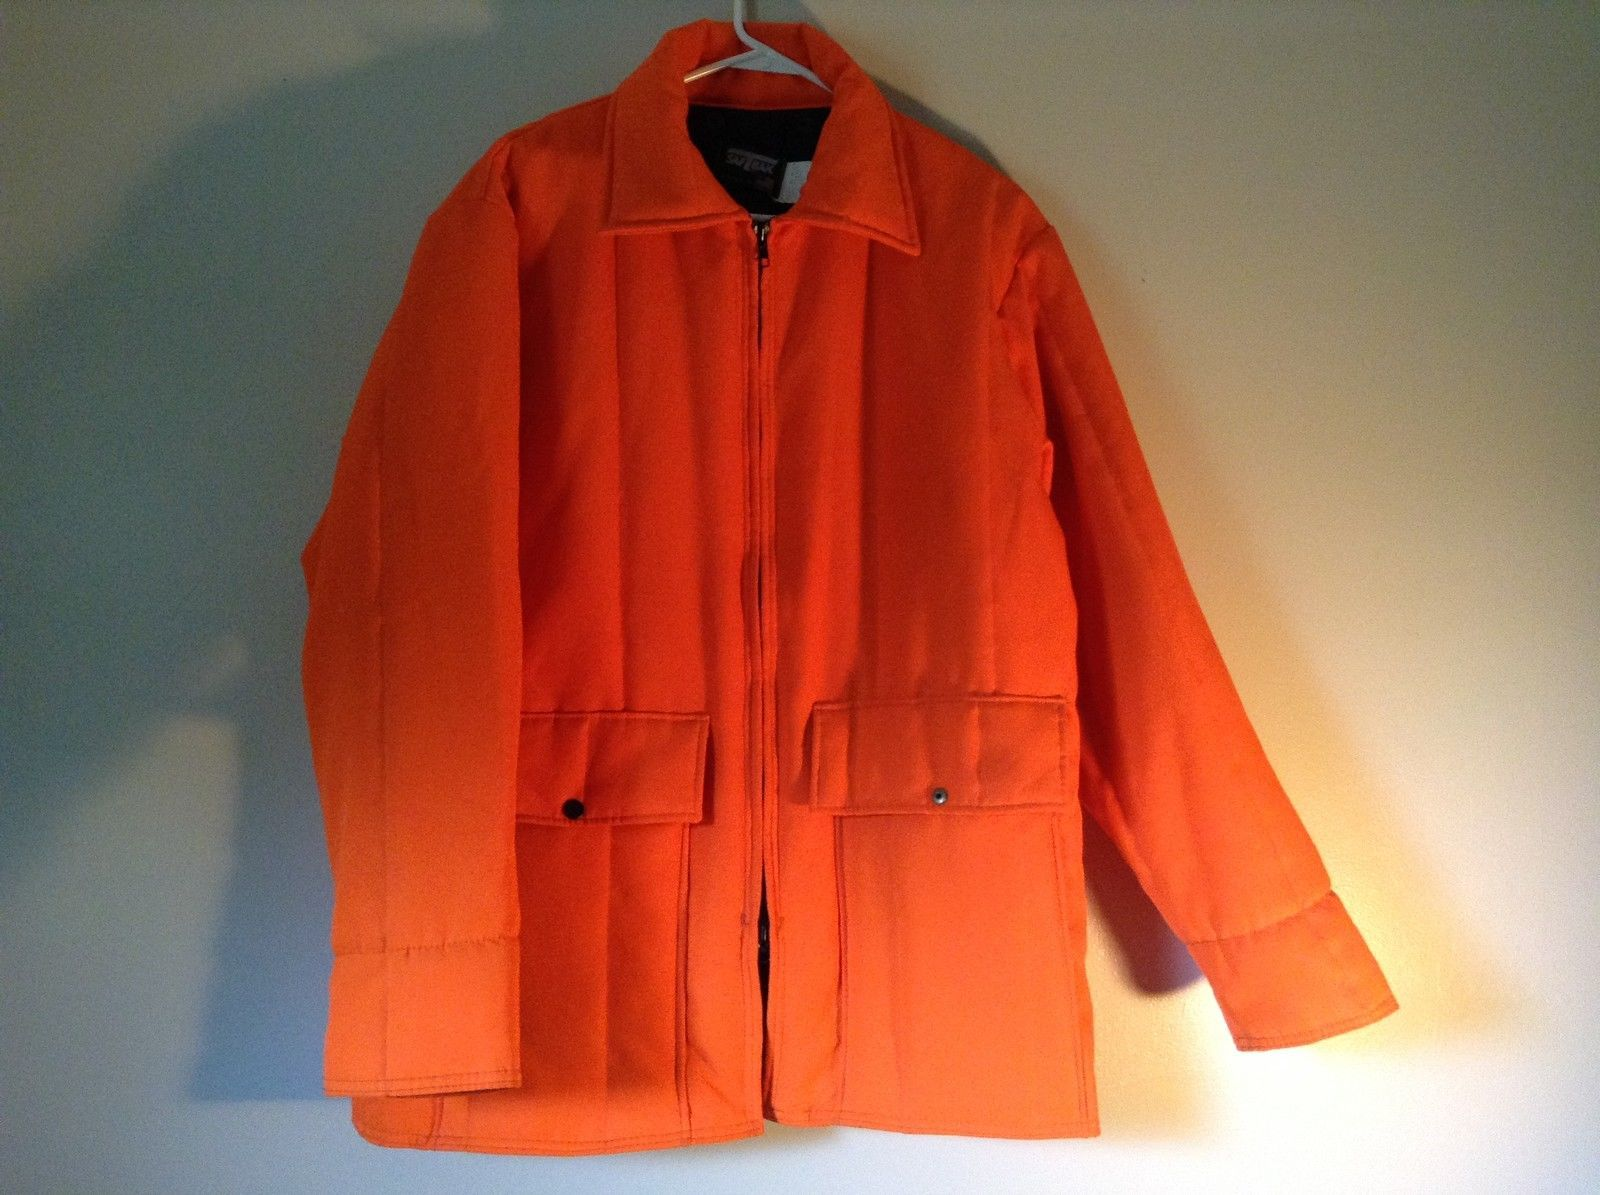 SAFT Bak Bright Orange 100 Percent Polyester Jacket Size L 42 to 44